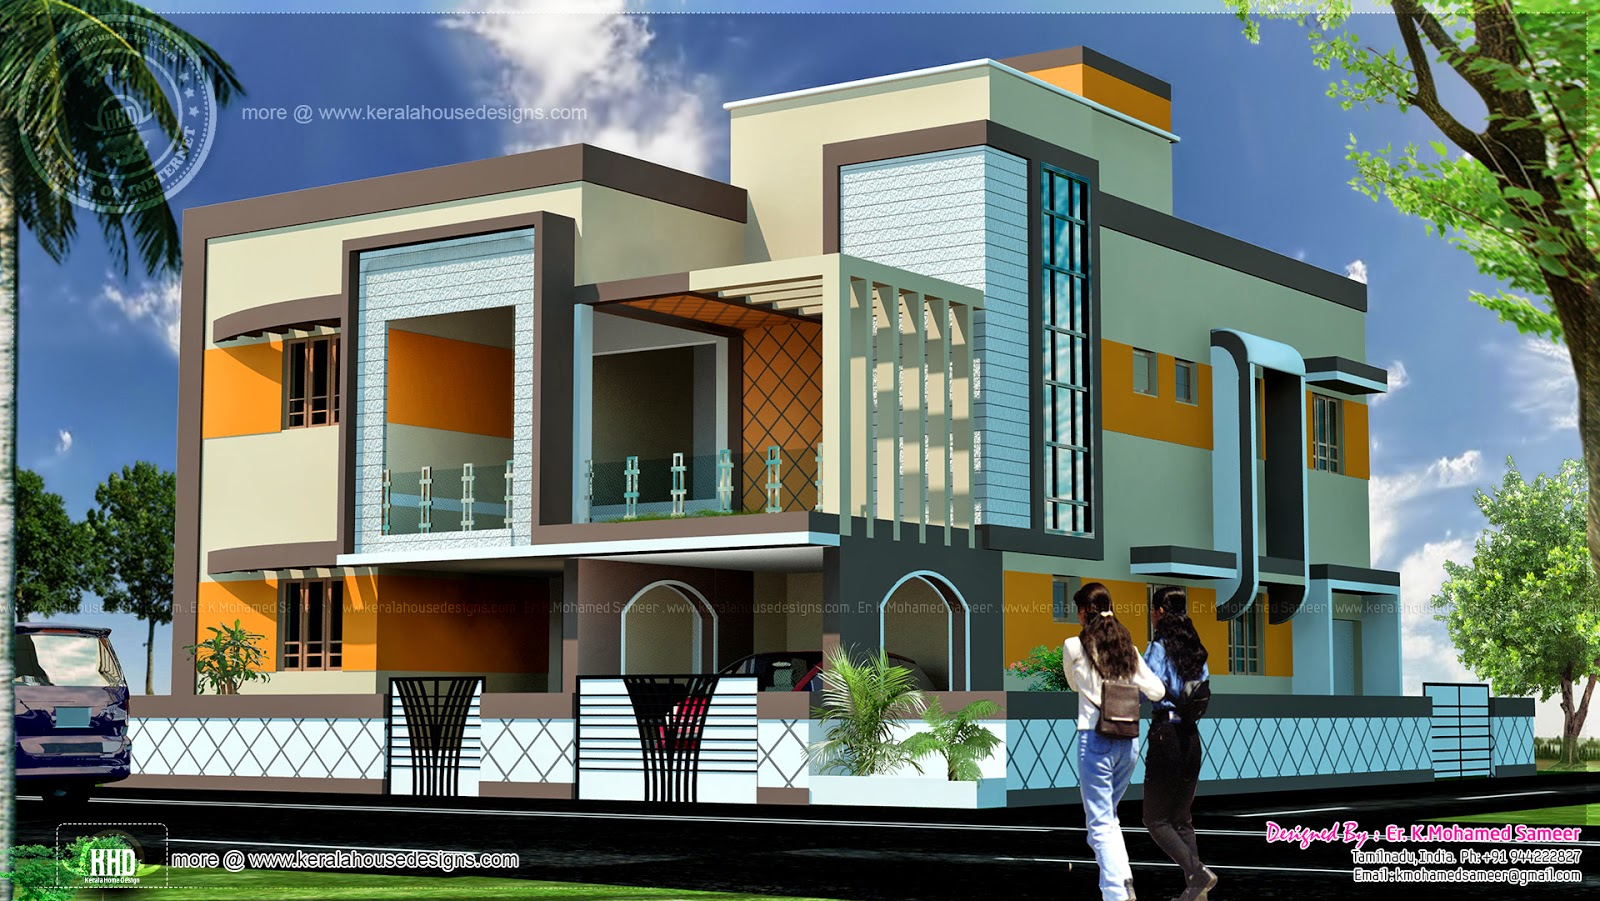 Tamilnadu house plans 1800 square feet house design plans for Home models in tamilnadu pictures